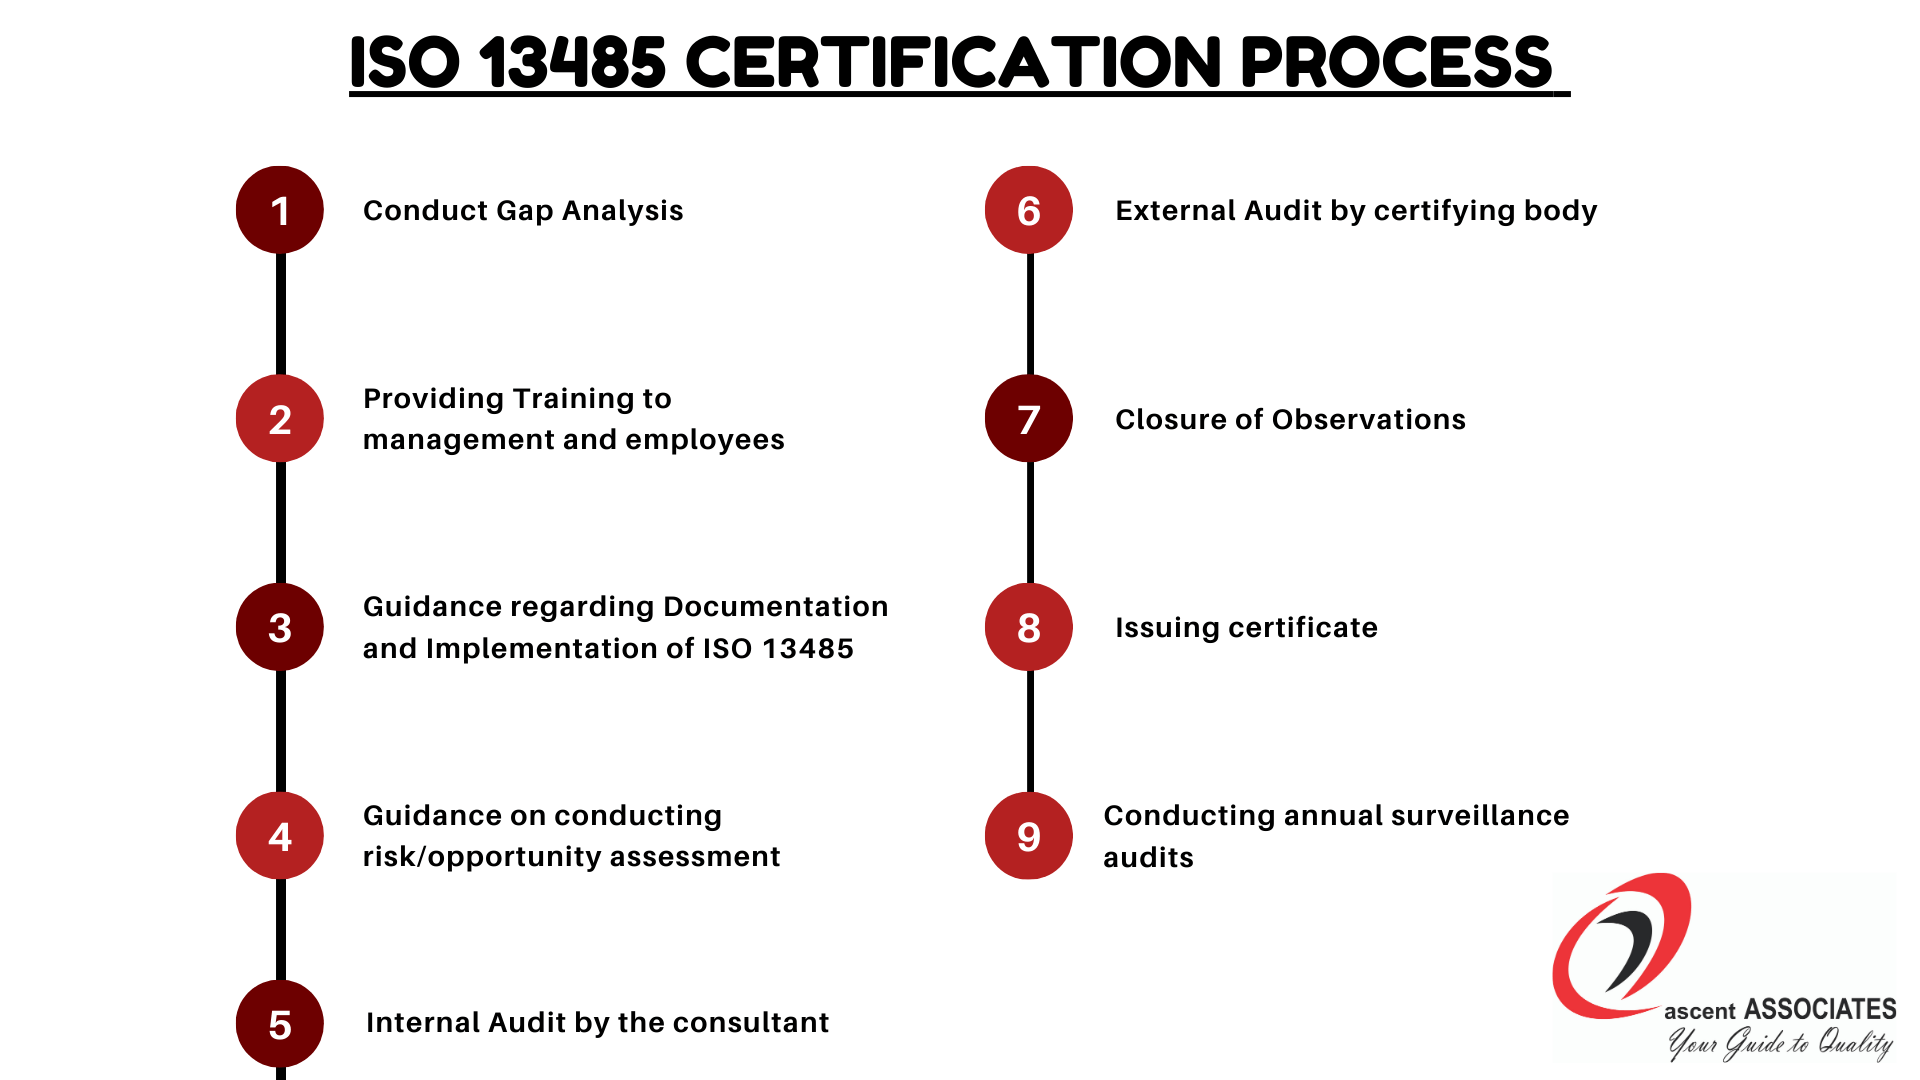 ISO 13485 Certification process